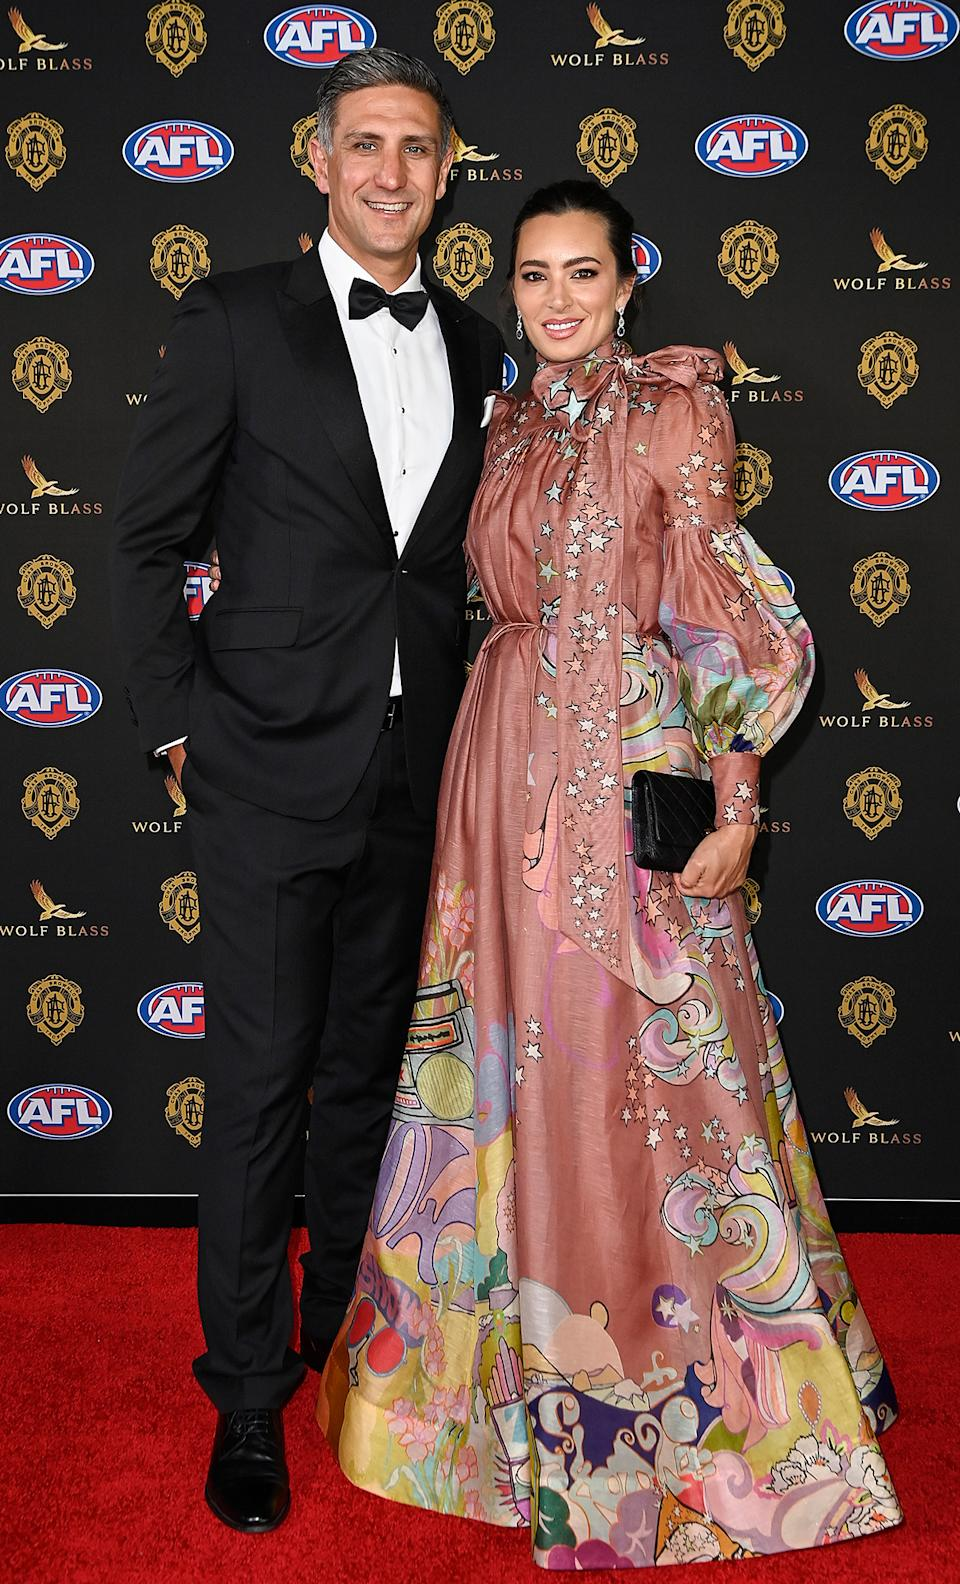 Matthew Pavlich and Lauren O'Shannassy at the Brownlow Medal 2021